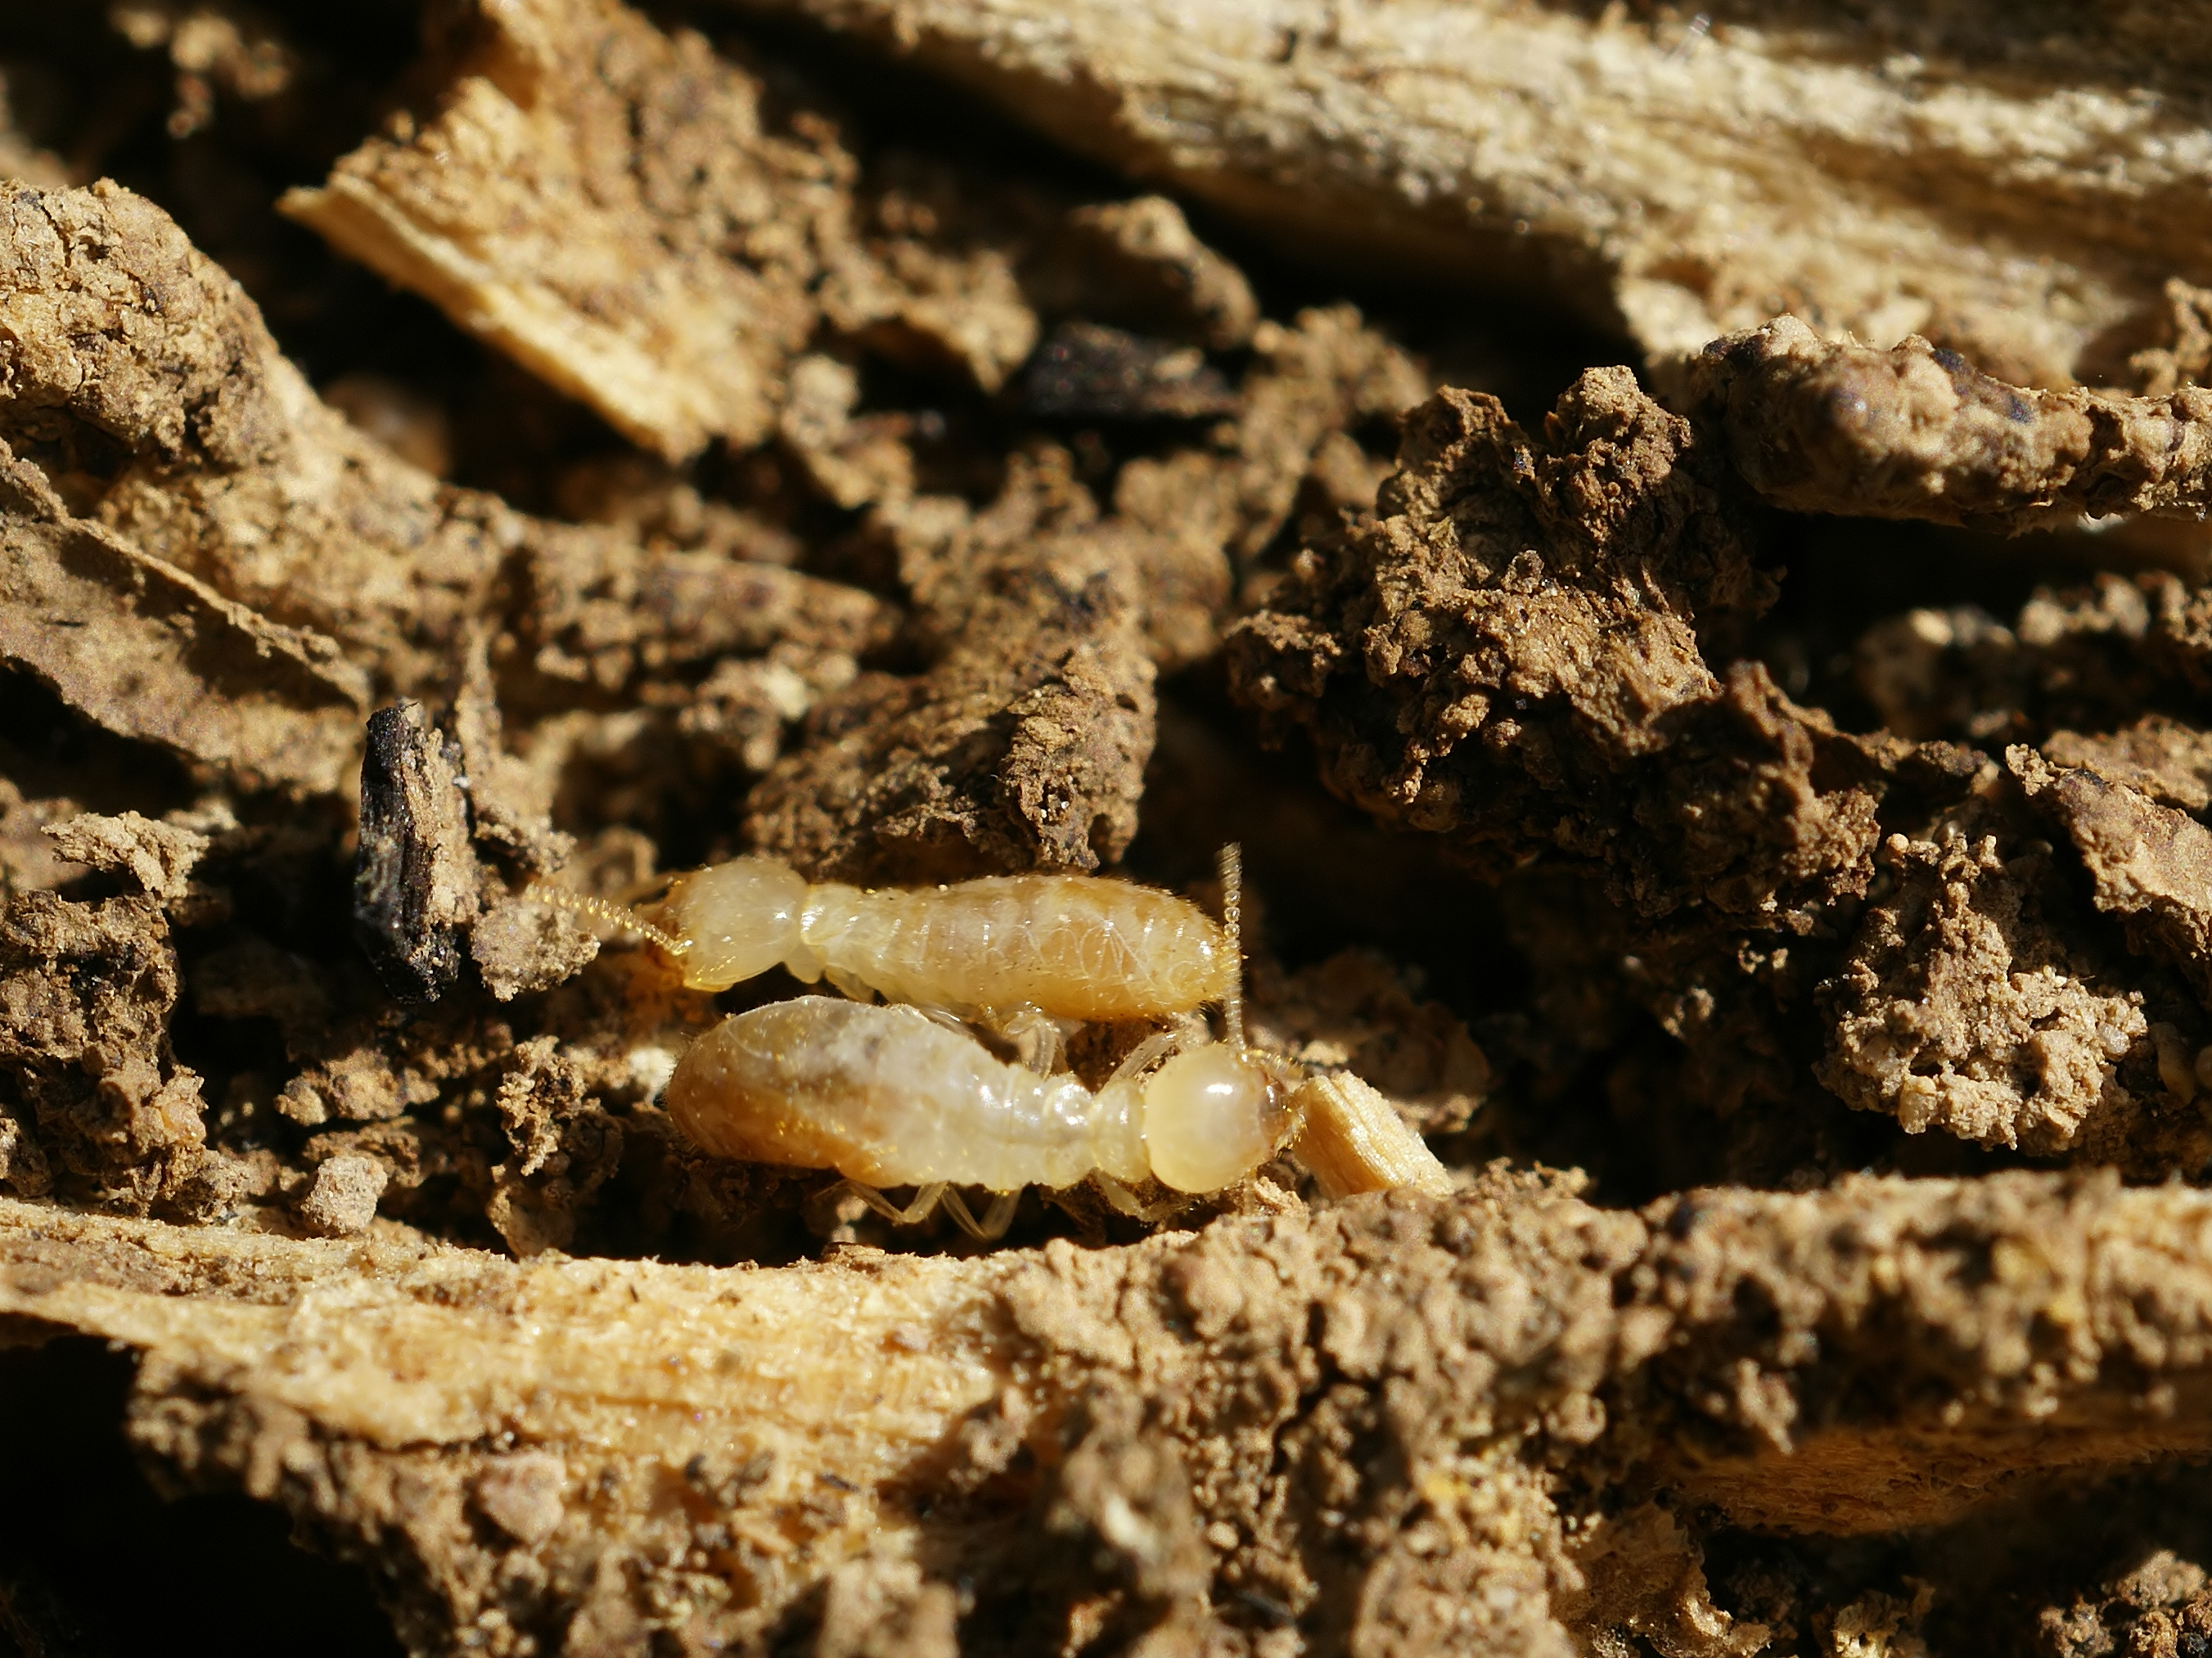 Four Effective Termite Control Methods to Protect Your Property and Furniture